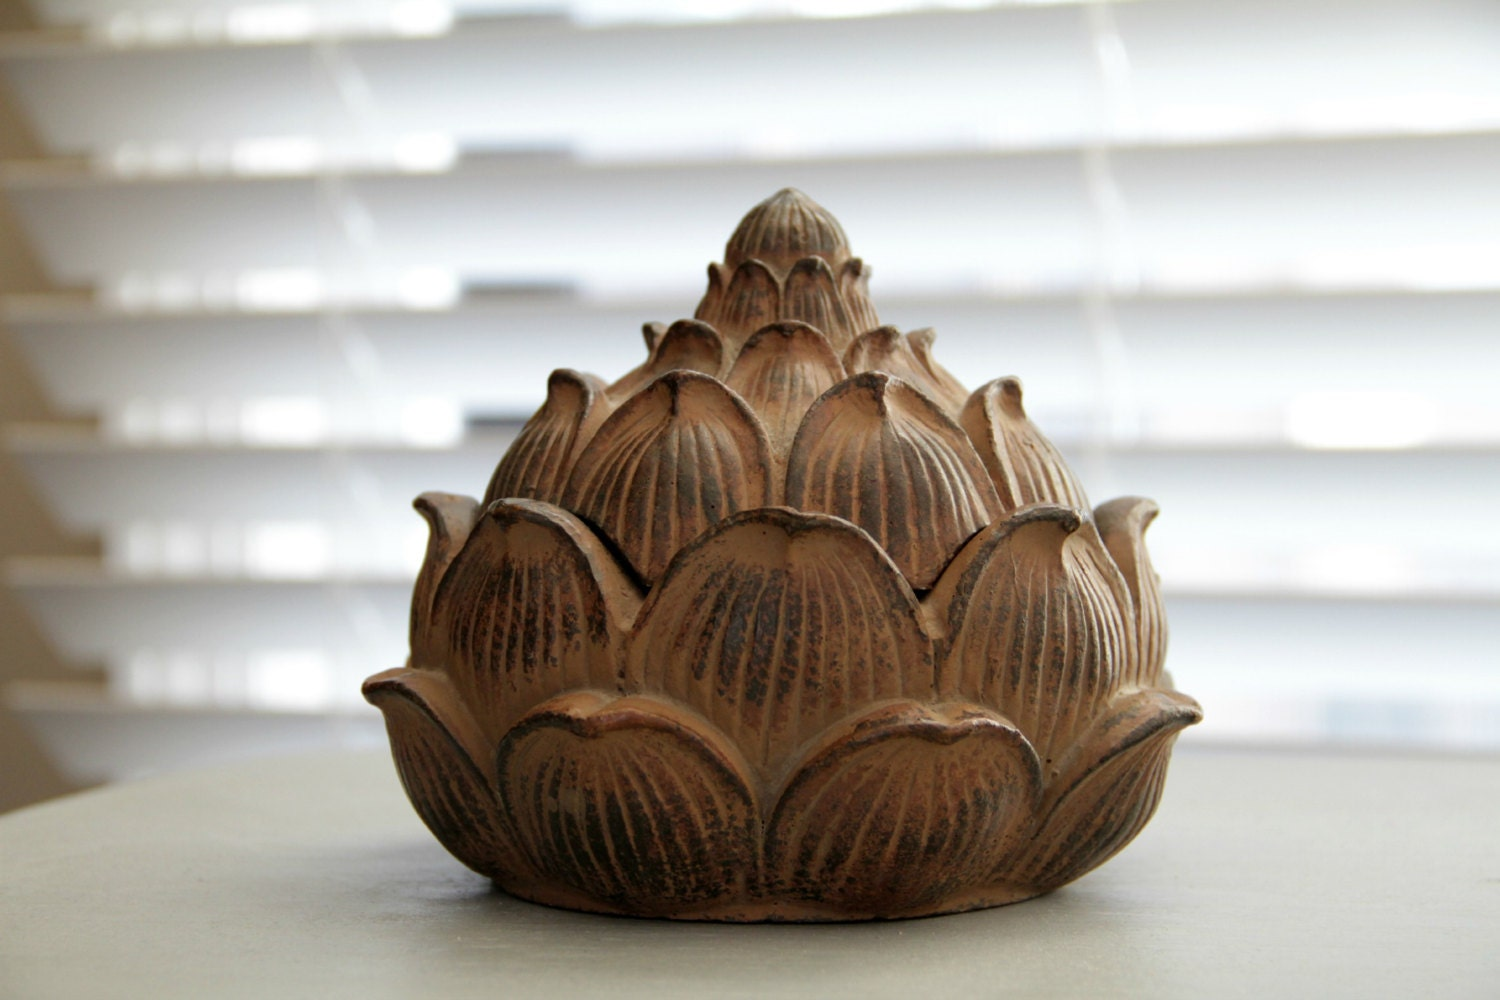 Kitchen decor artichoke dish artichoke bowl home by for Artichoke decoration